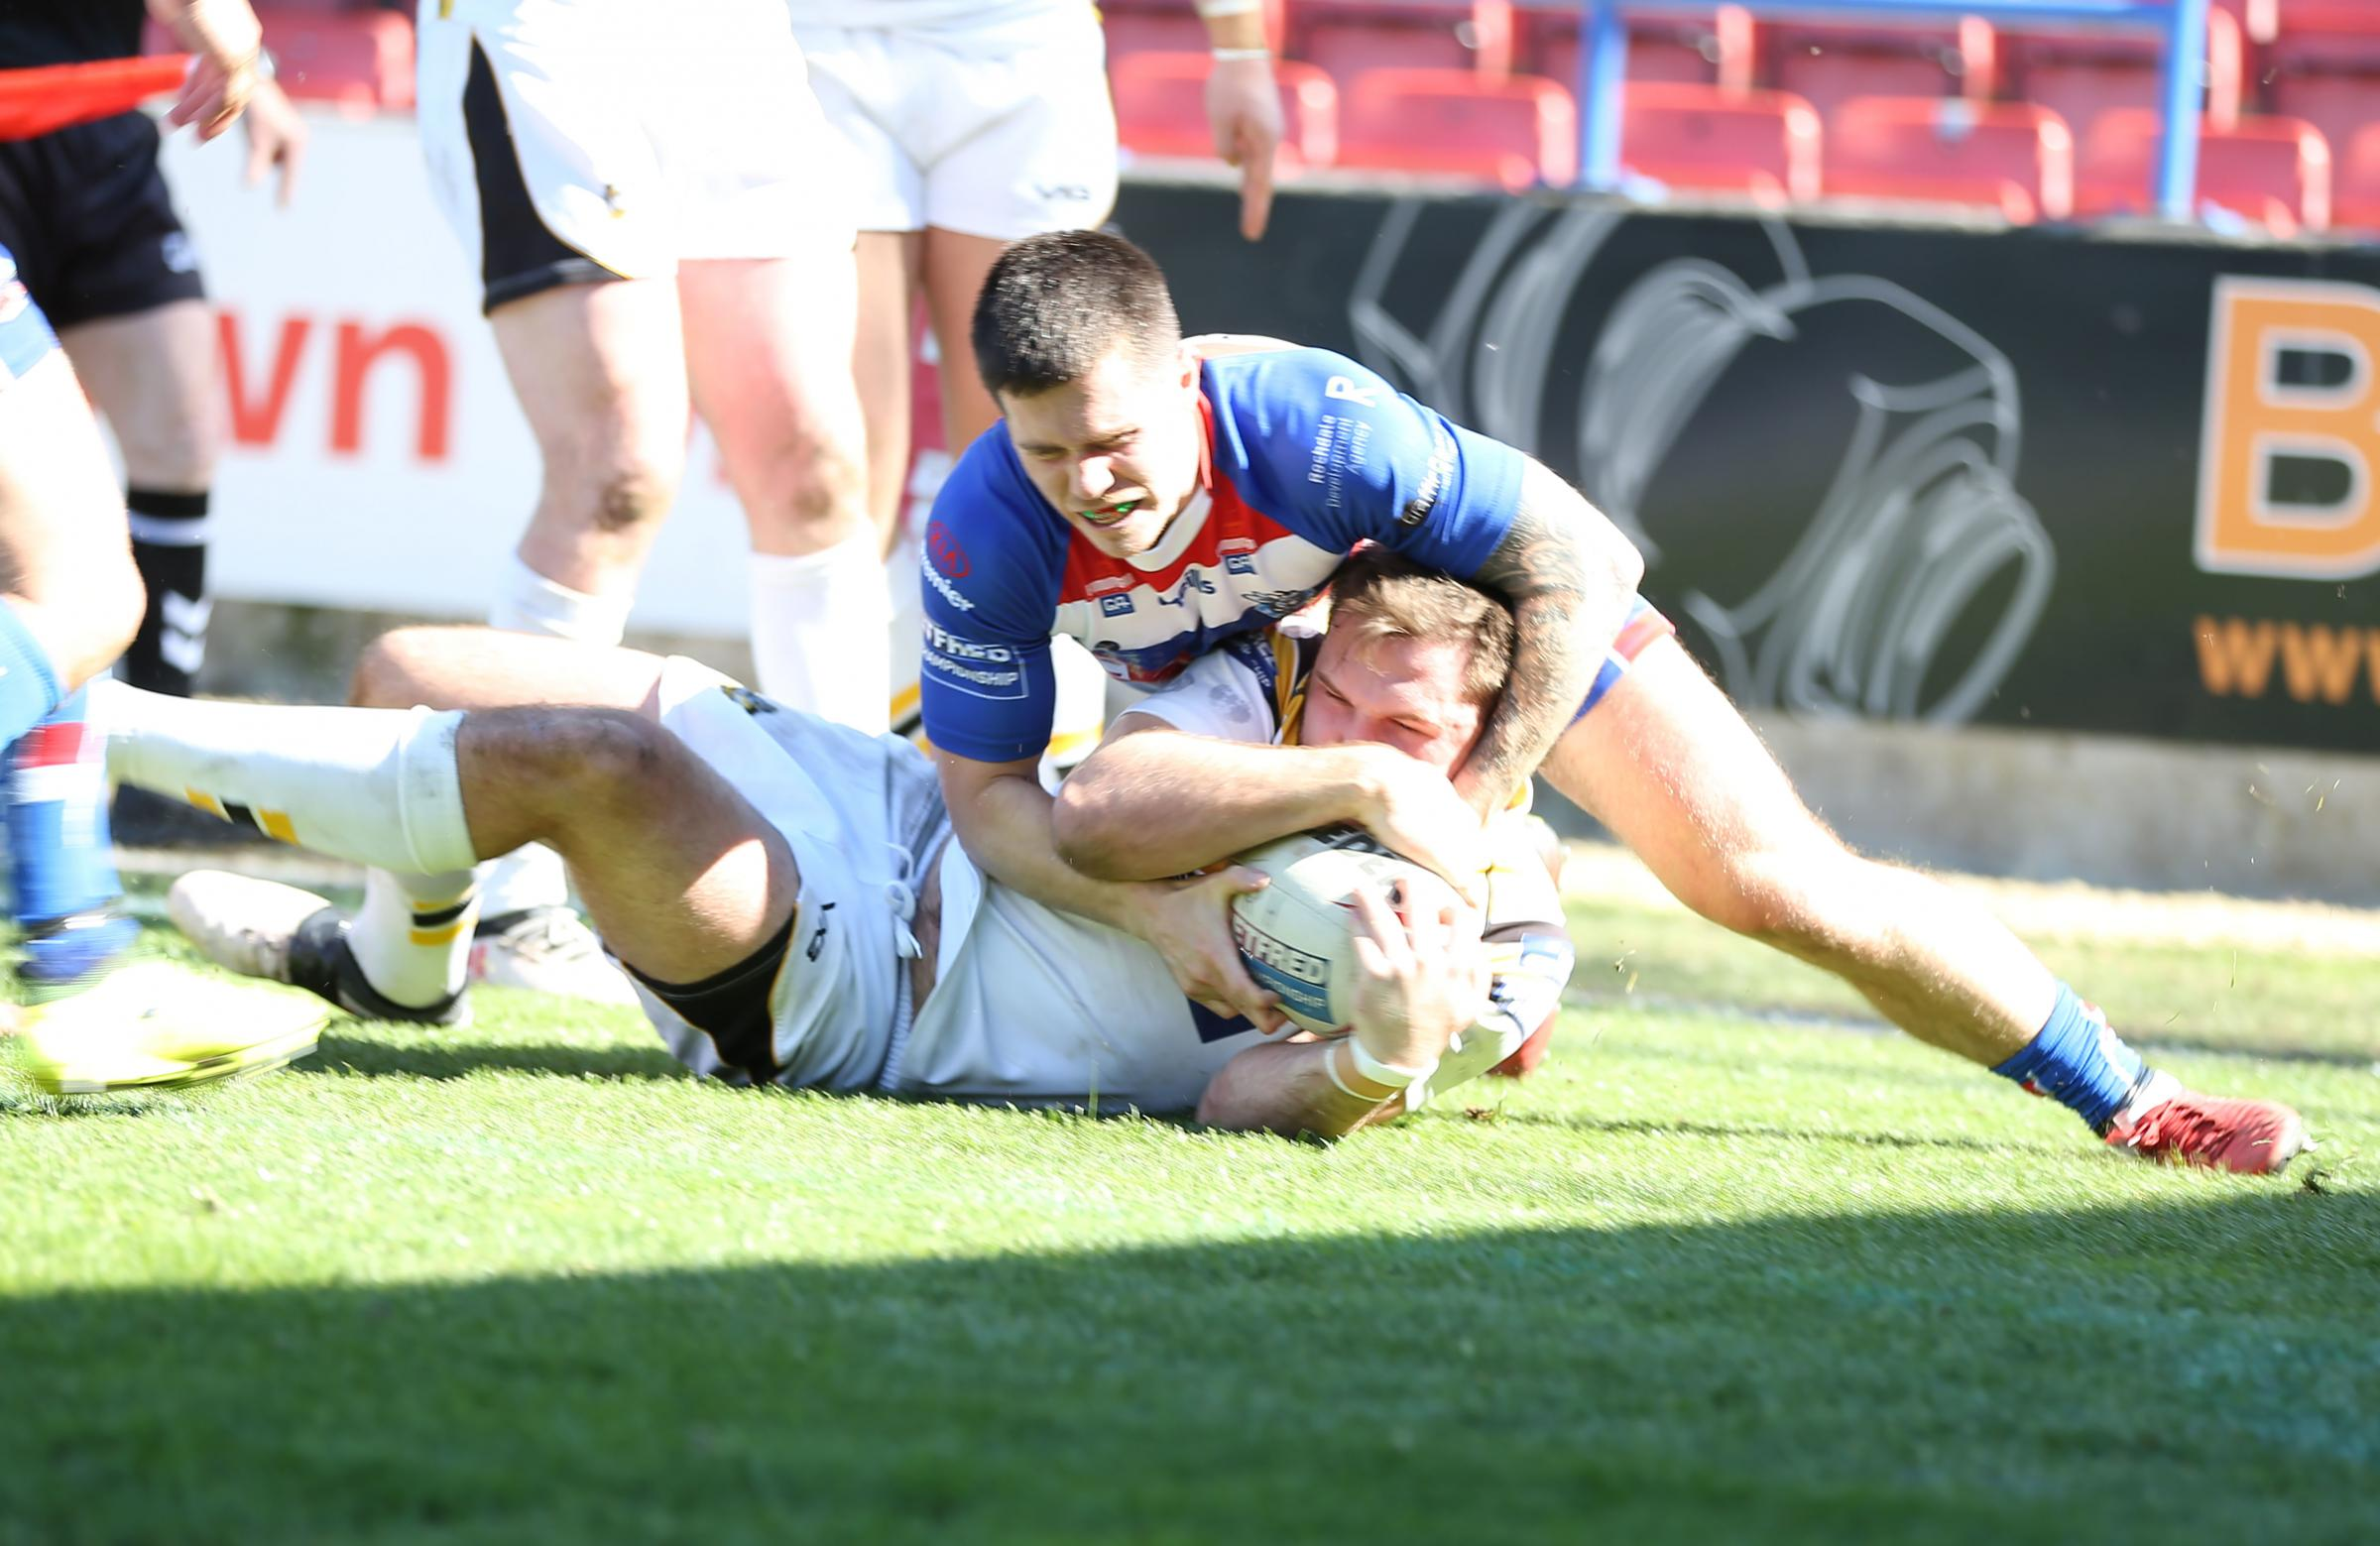 Rochdale Hornets' James Worthington can't stop York City Knights' Jason Bass from scoring his second try of the narrow Betfred Championship victory at Spotland. Picture: Gordon Clayton